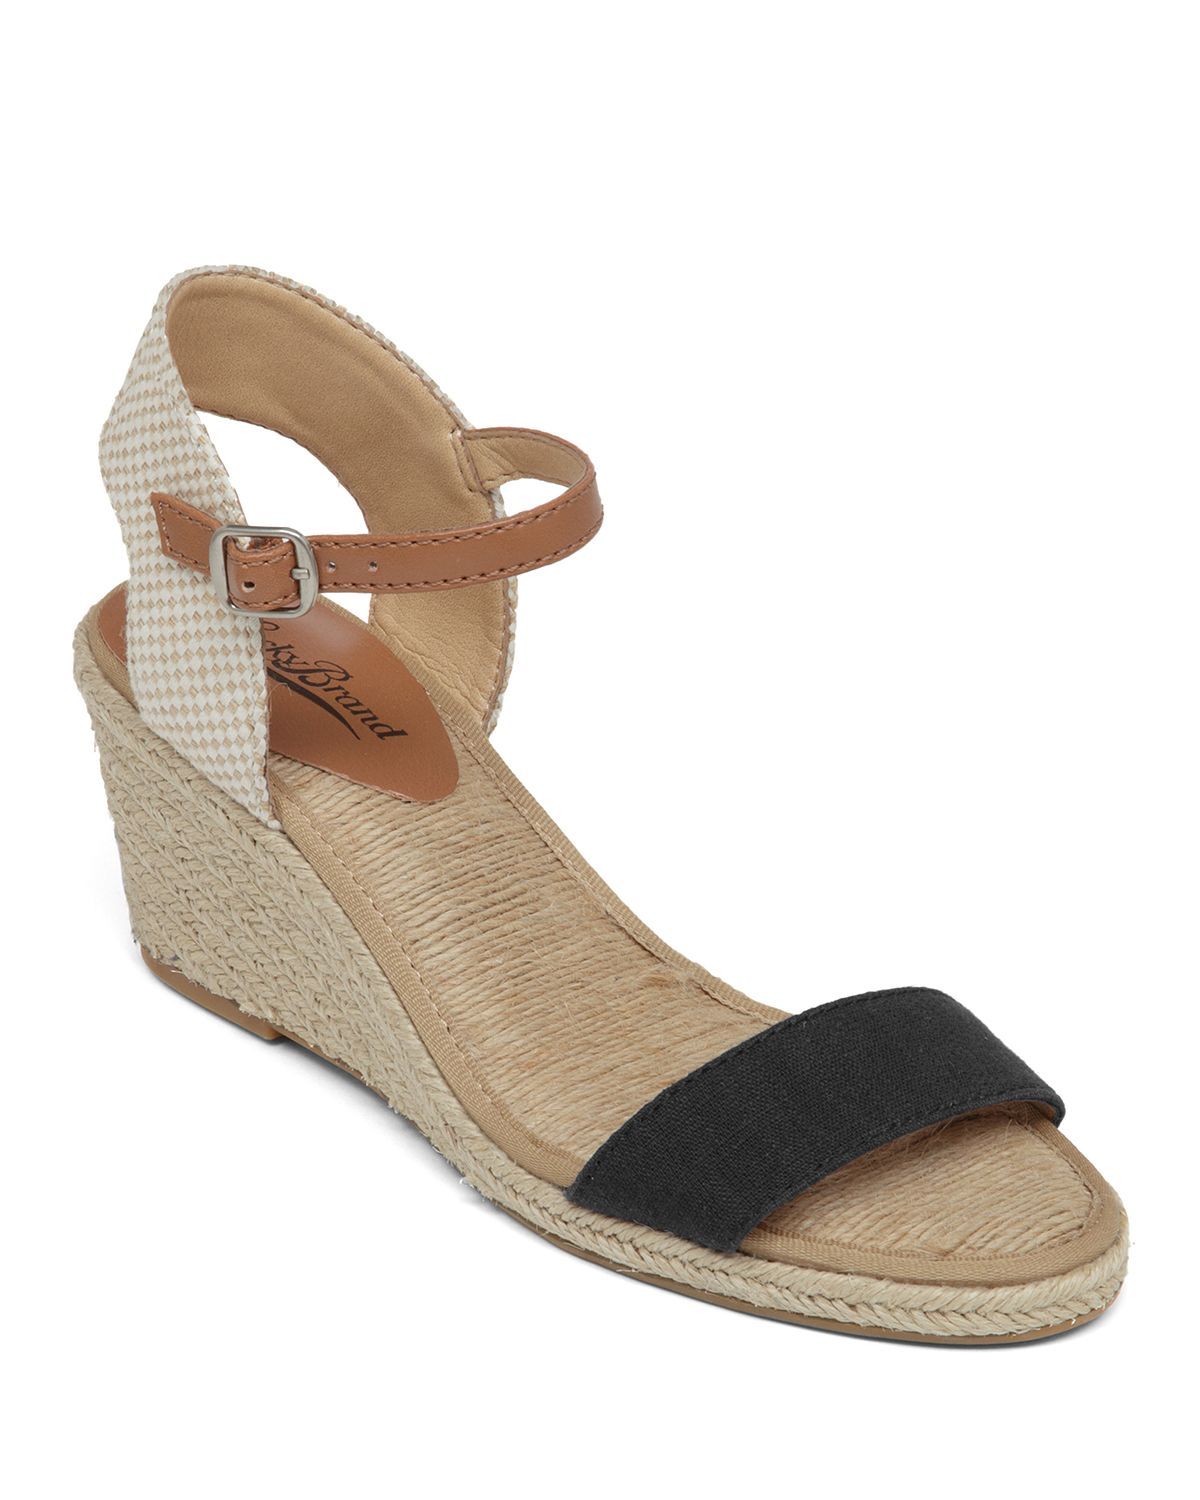 a33dadda1 Lucky Brand Espadrille Wedge Sandals - Kavelli Woven in Black - Lyst